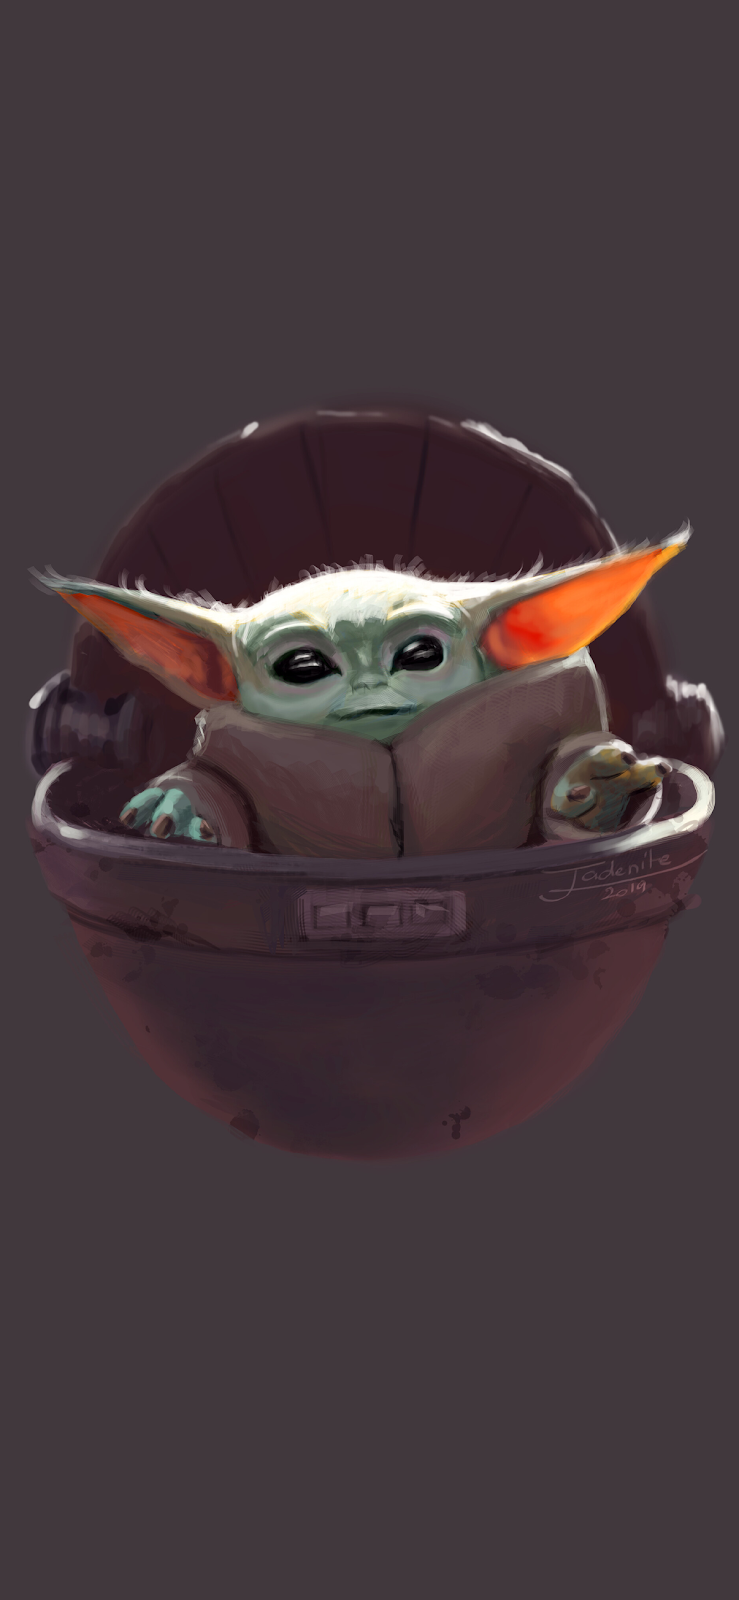 "[WALLPAPERS] The child ""Baby Yoda"" phone wallpaper"